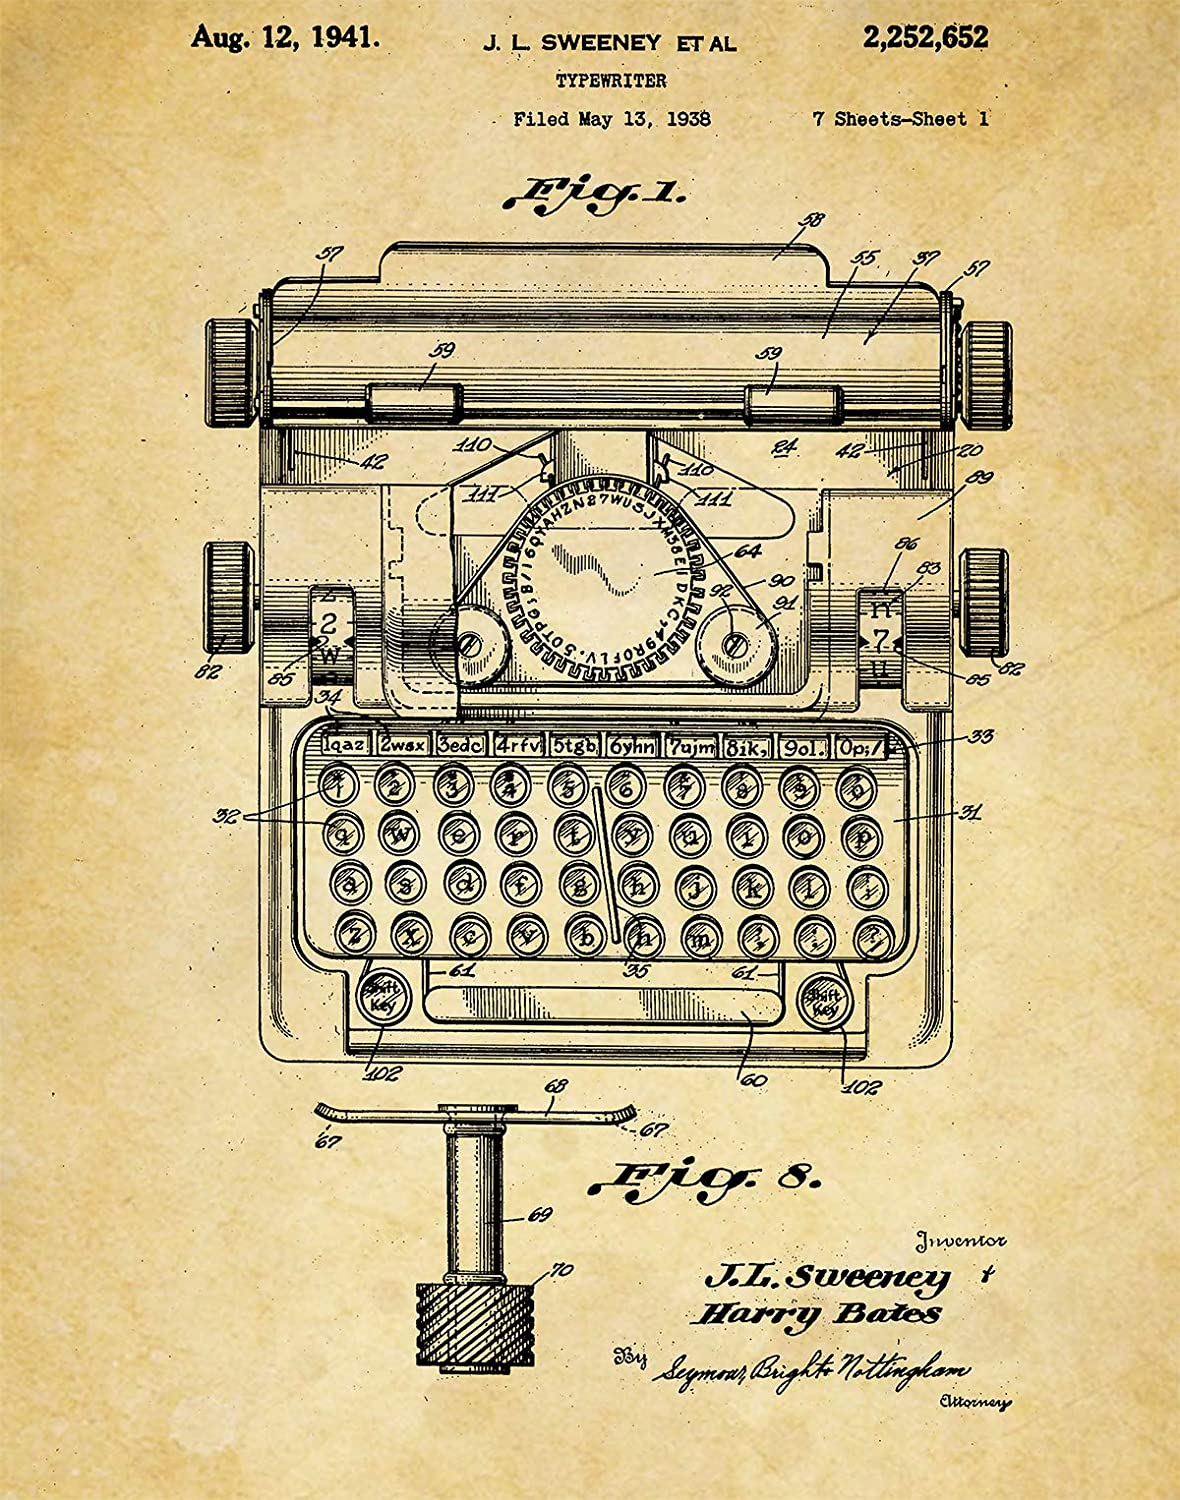 Amazon.com: Typewriter Patent Wall Art Print - one (11x14) Unframed ...